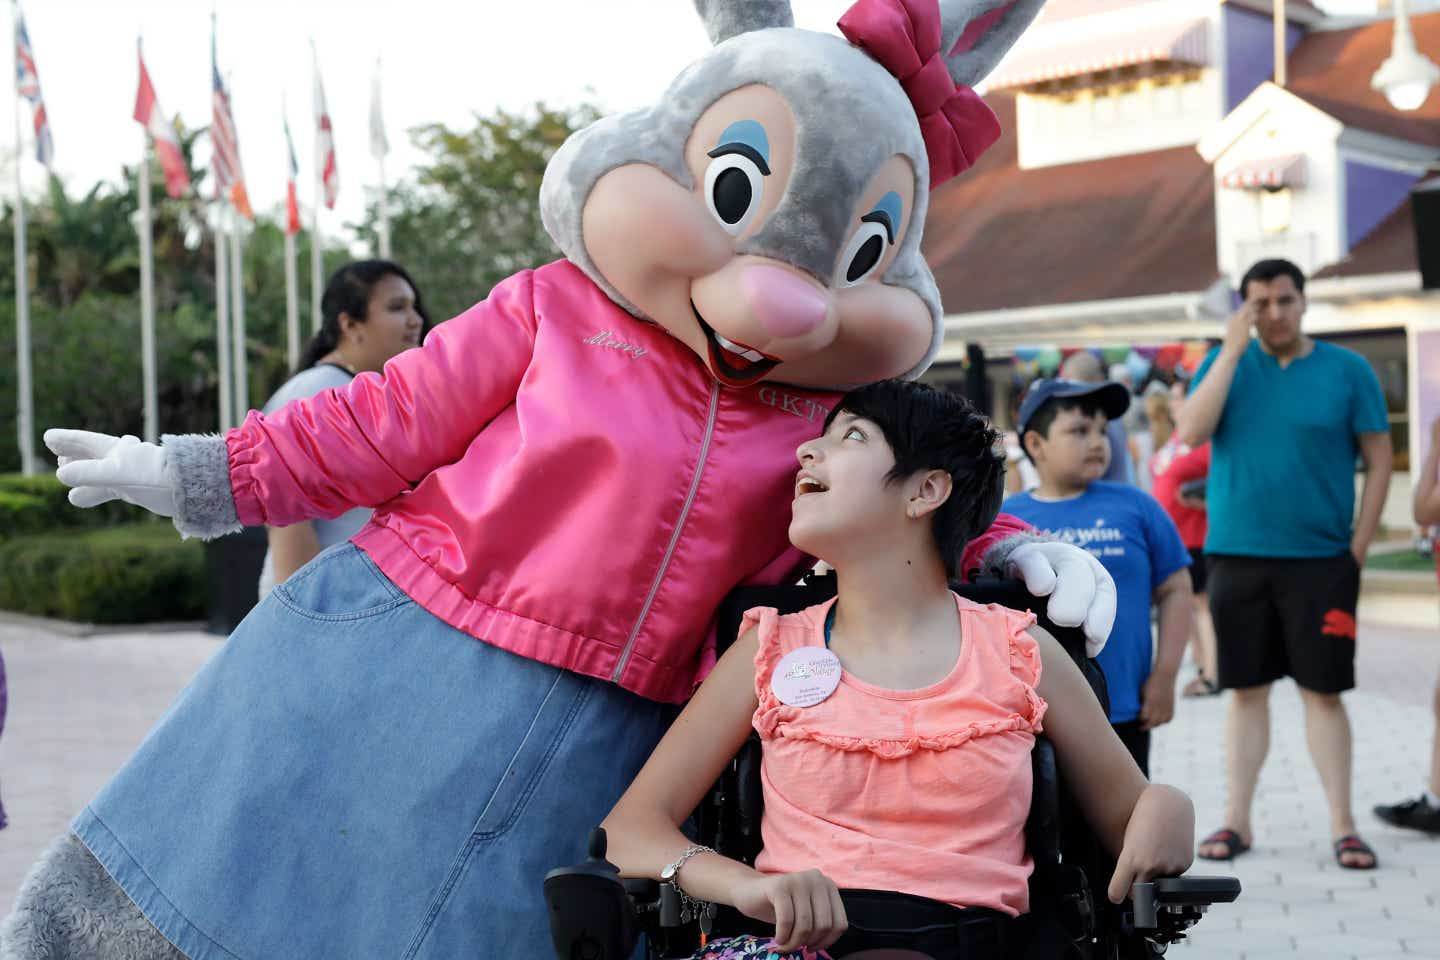 Miss Merry the Bunny (left) wears a pink coat and bow as she embraces a young villager in a wheelchair (right).